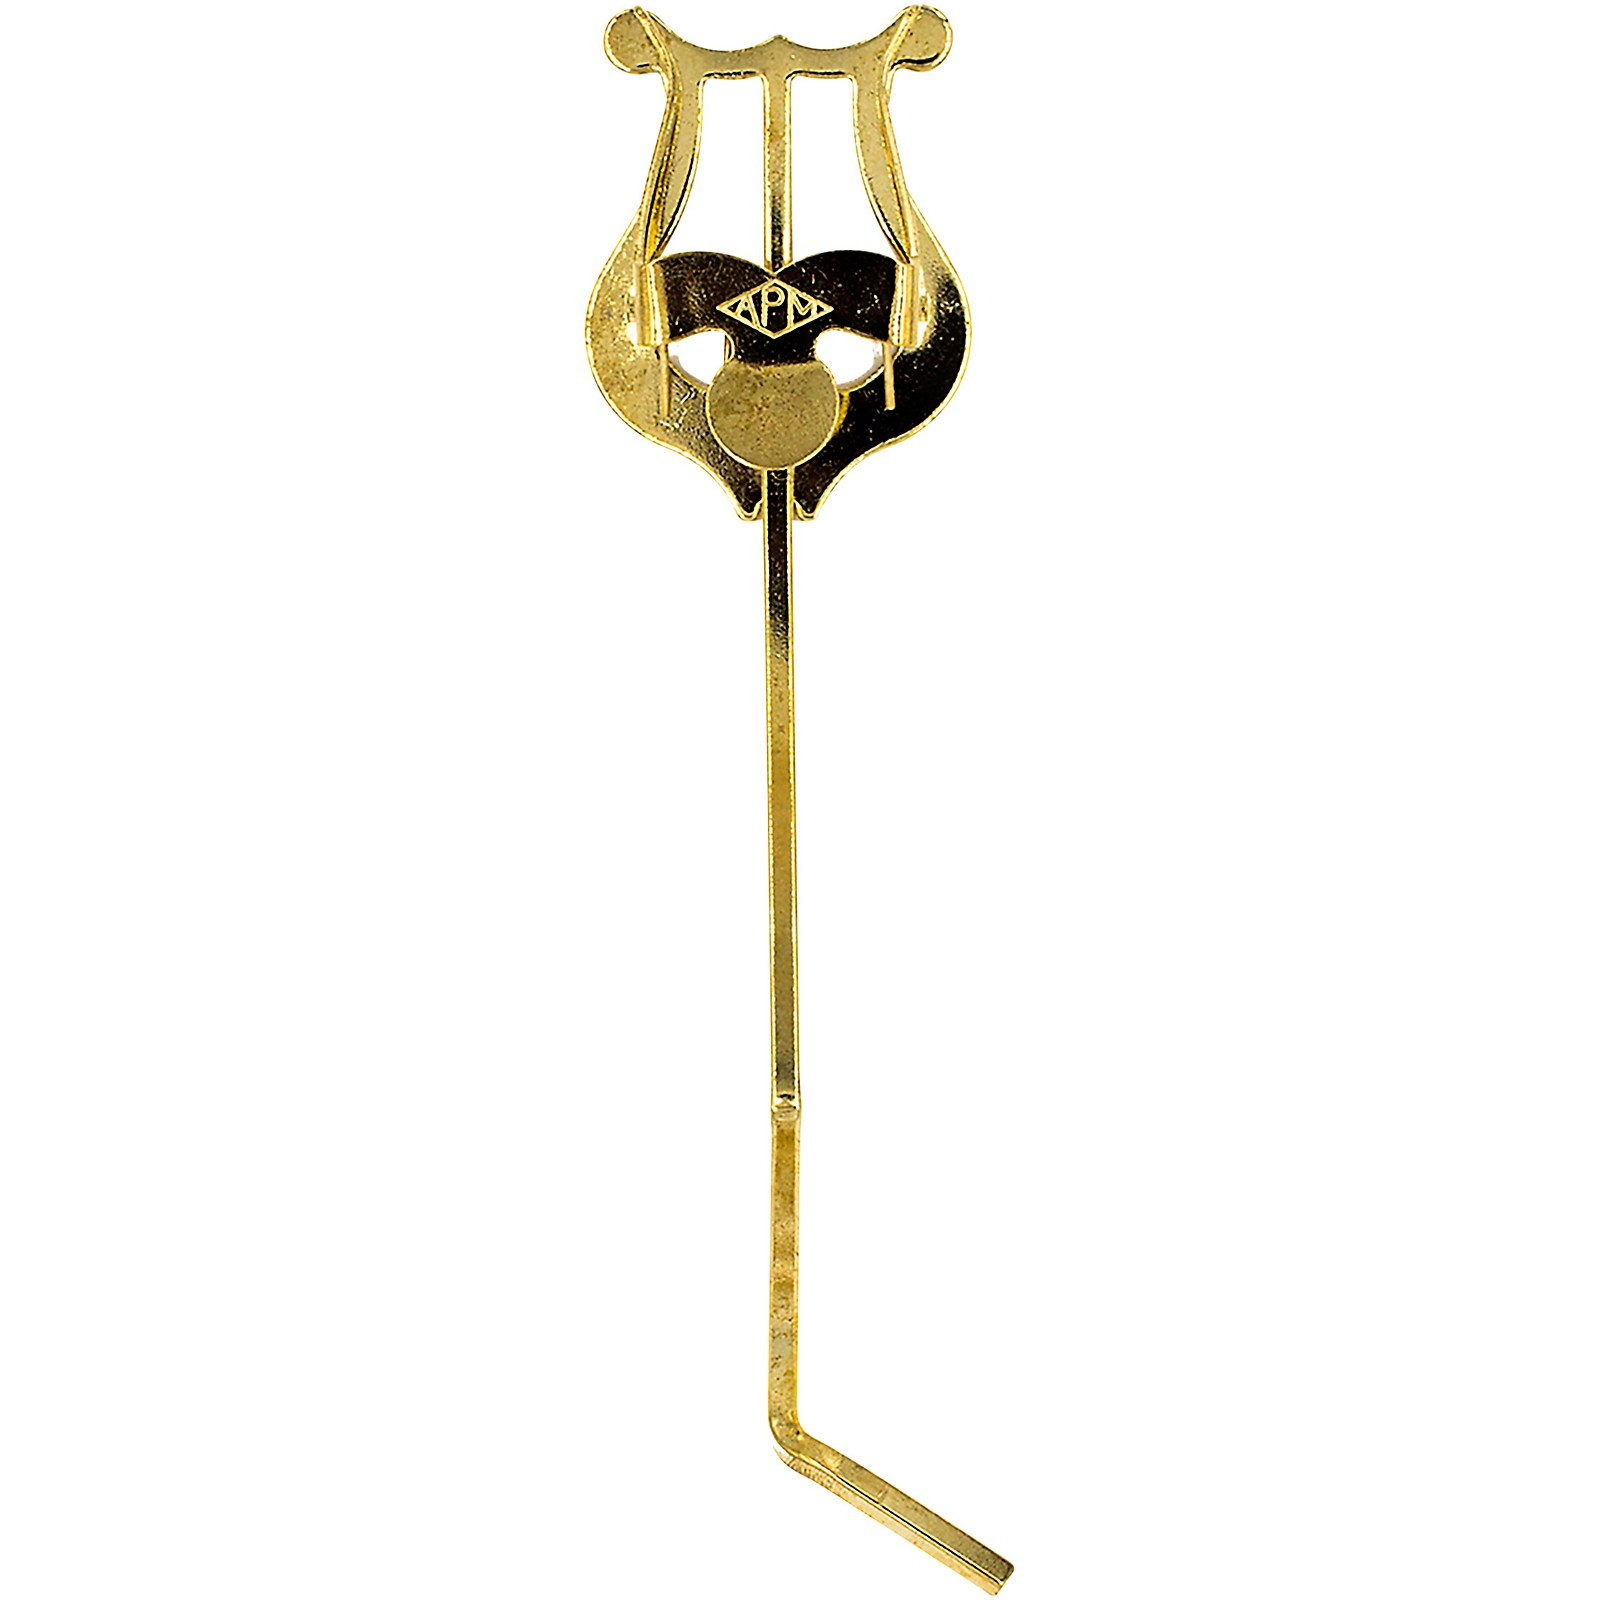 Faxx French Horn Lyre